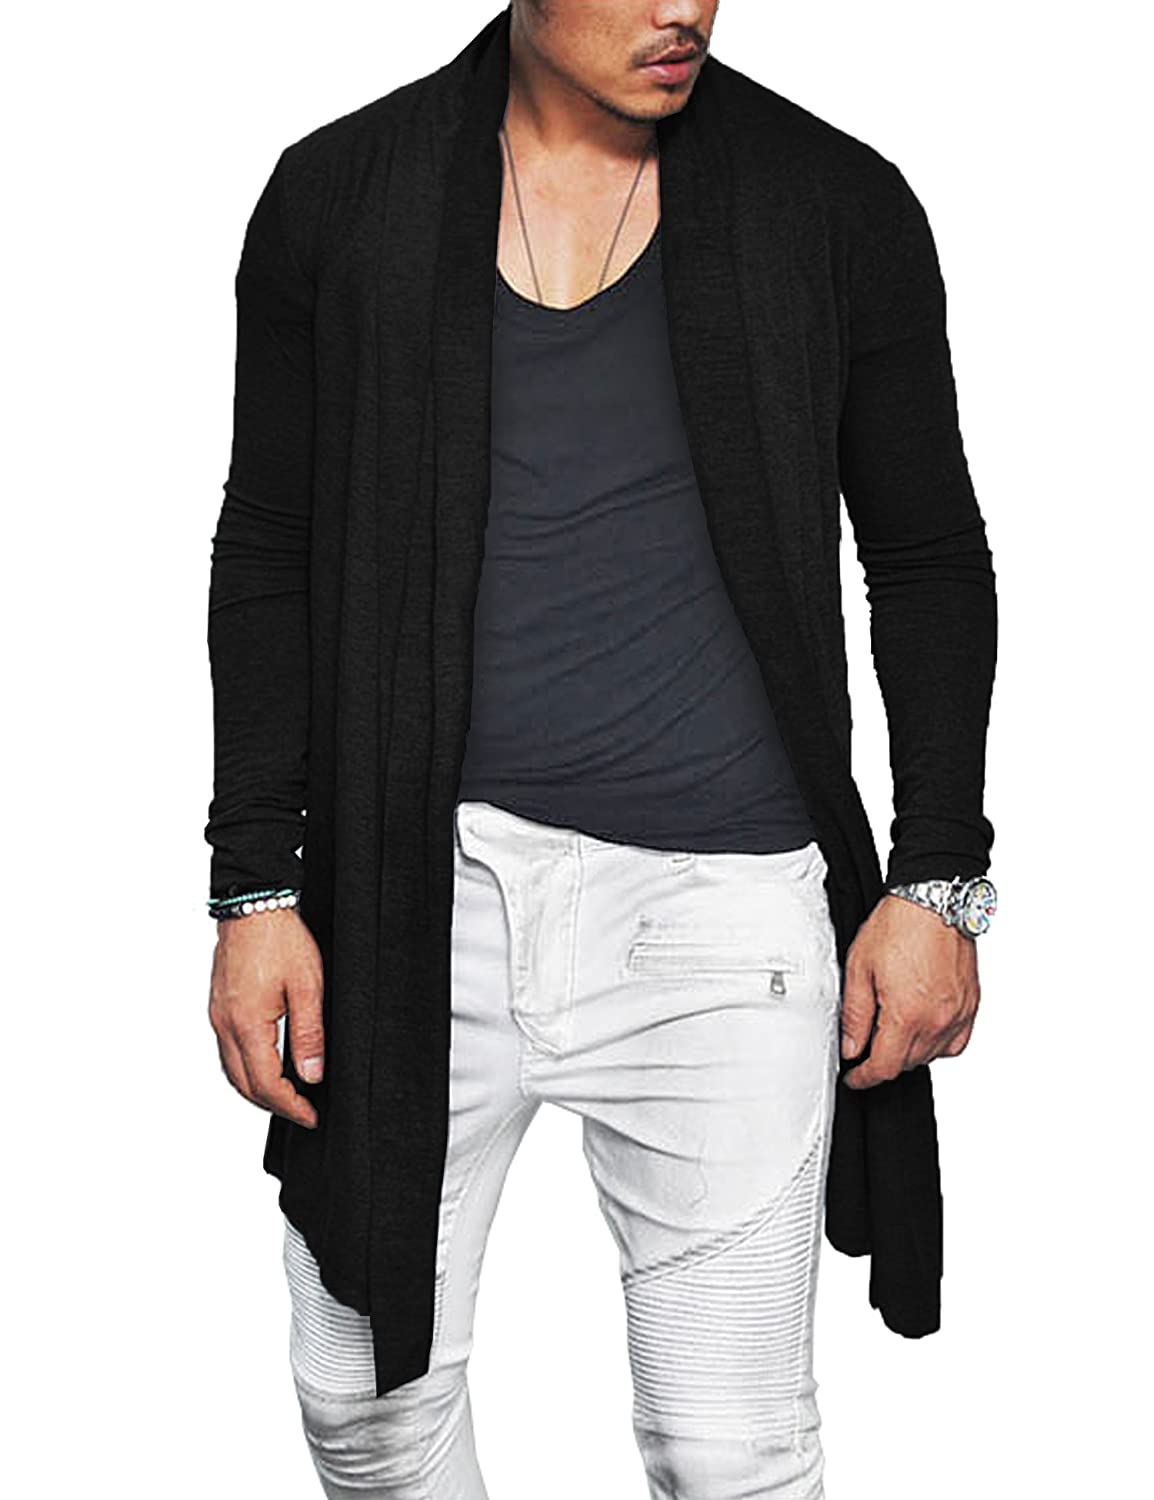 Stunner Men's Spring Slim With Hood Sweater Casual Long Cardigan ...